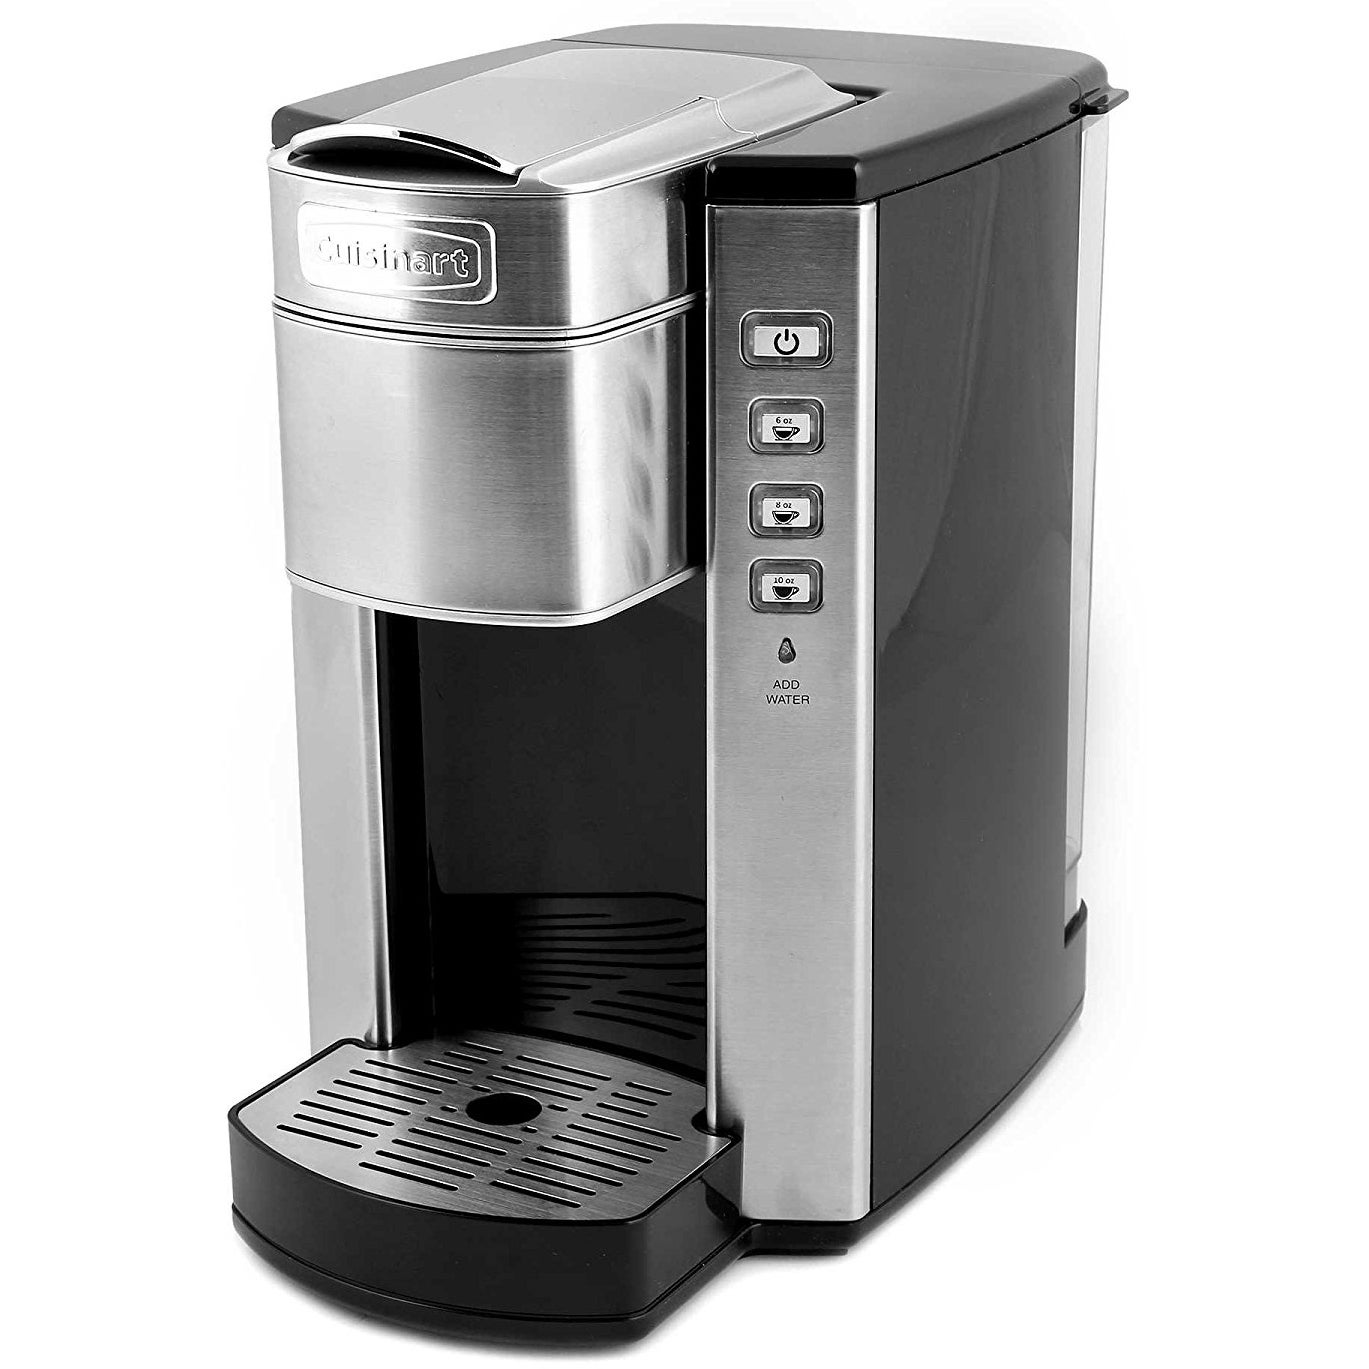 Shop Cuisinart Ss 6 Compact Single Serve Coffee Maker Brushed